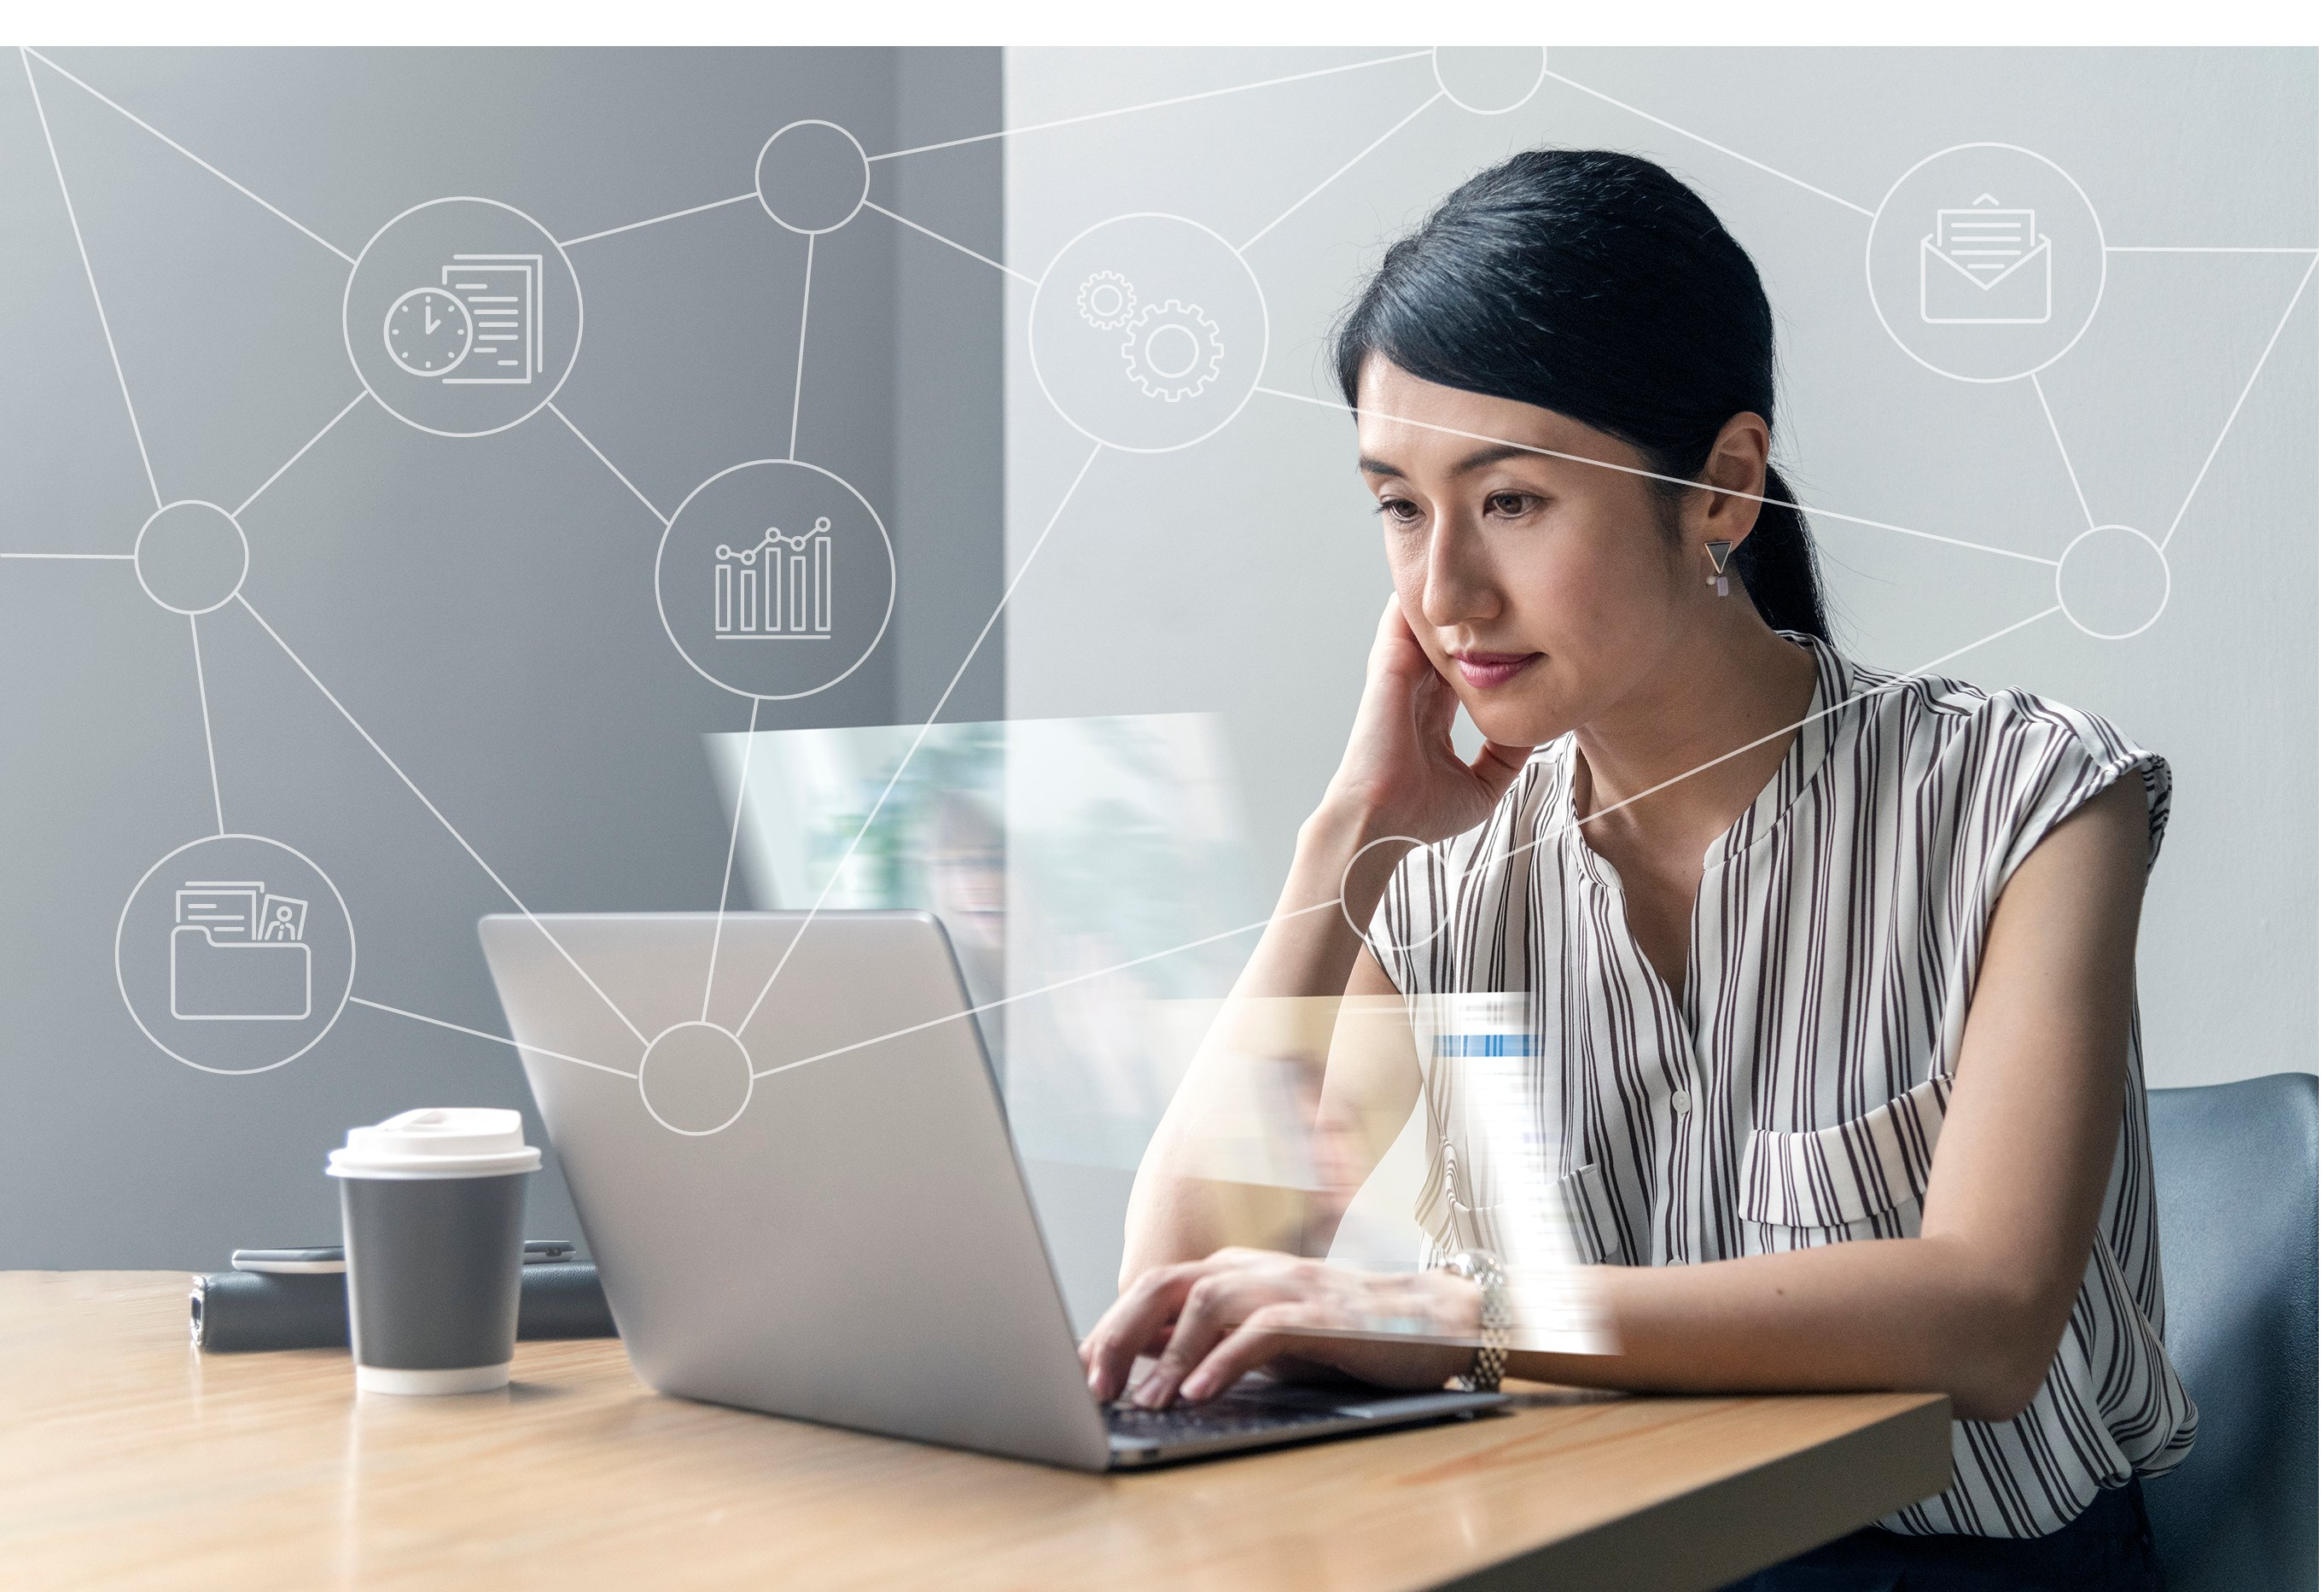 How Are Remote Work and New Technologies Impacting Information Management?